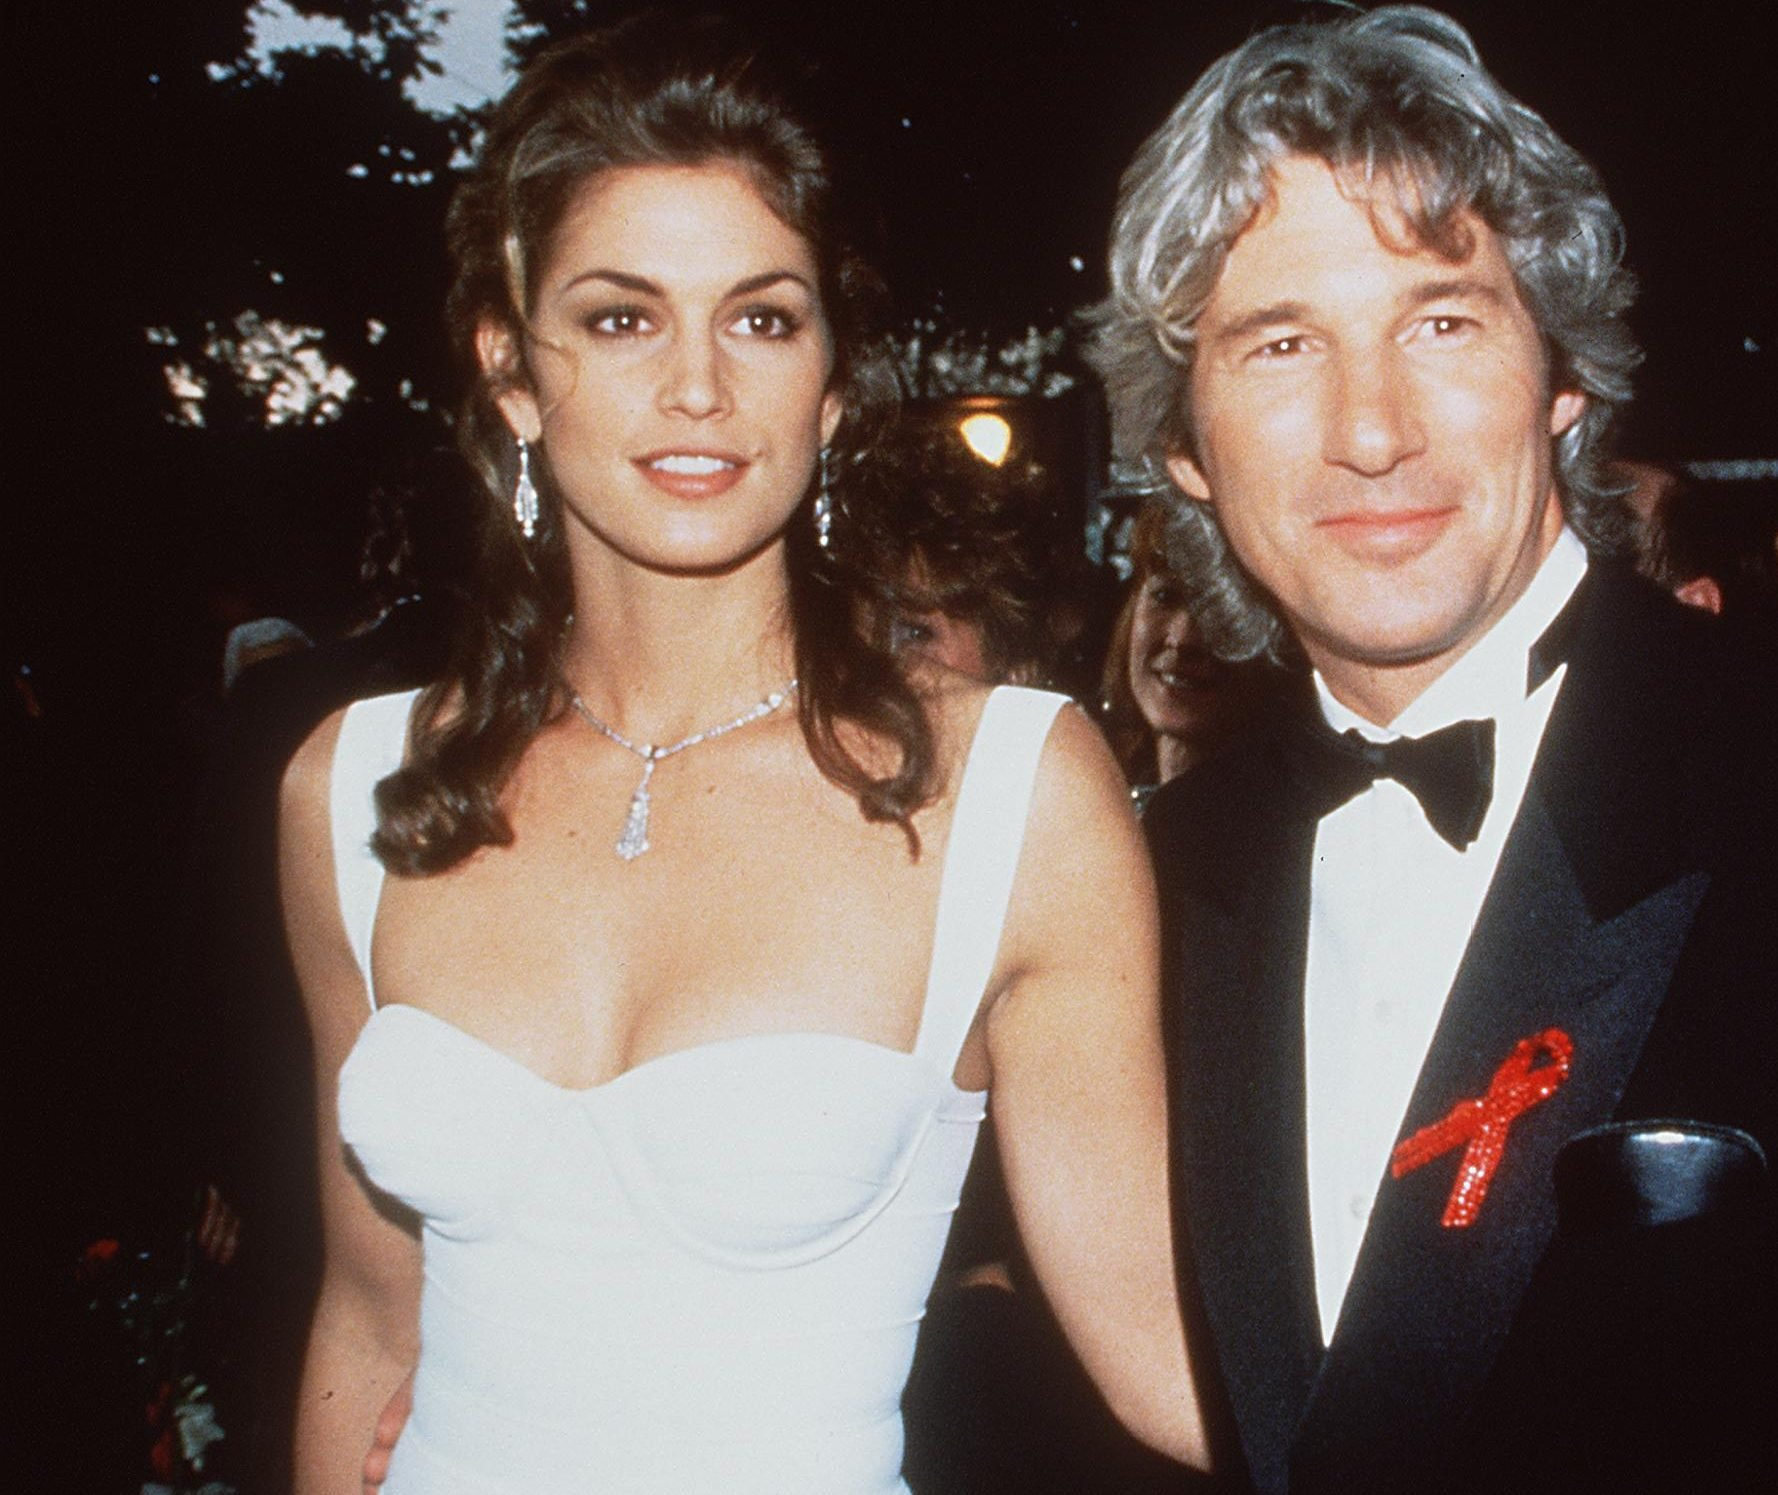 GettyImages 909501 e1629366821354 The 10 Biggest Supermodels Of The 80s And What They Look Like Now